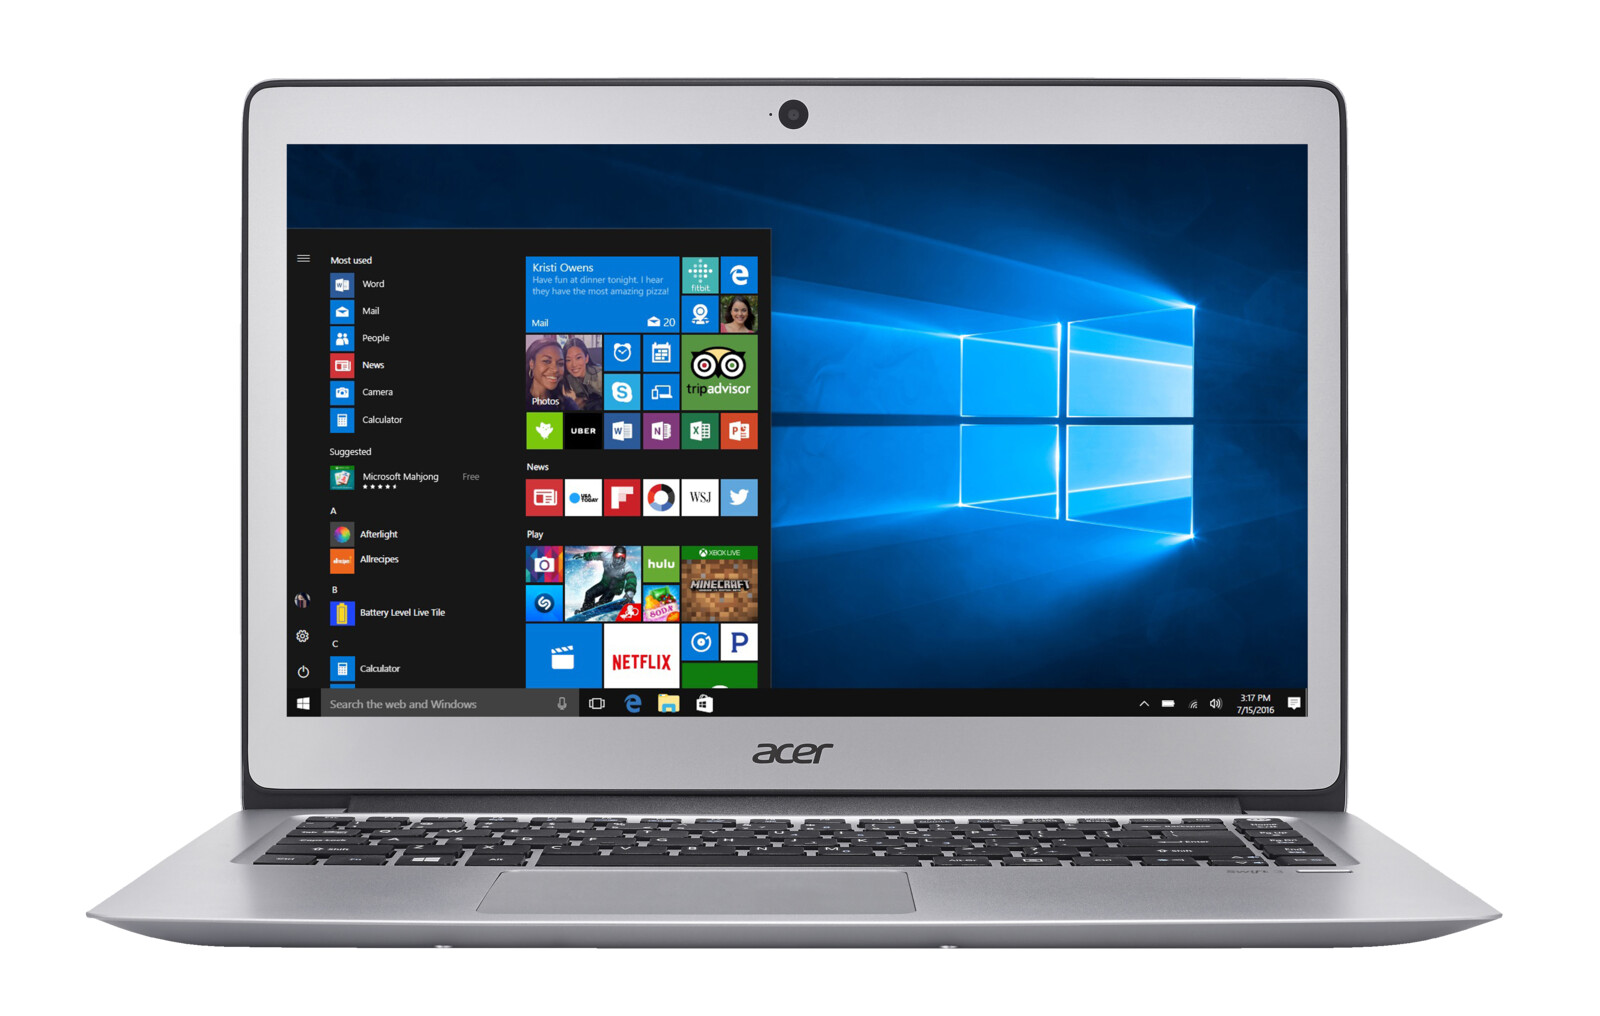 ACER Swift 3 (SF314-51-731X), Notebook mit 14 Zoll Display